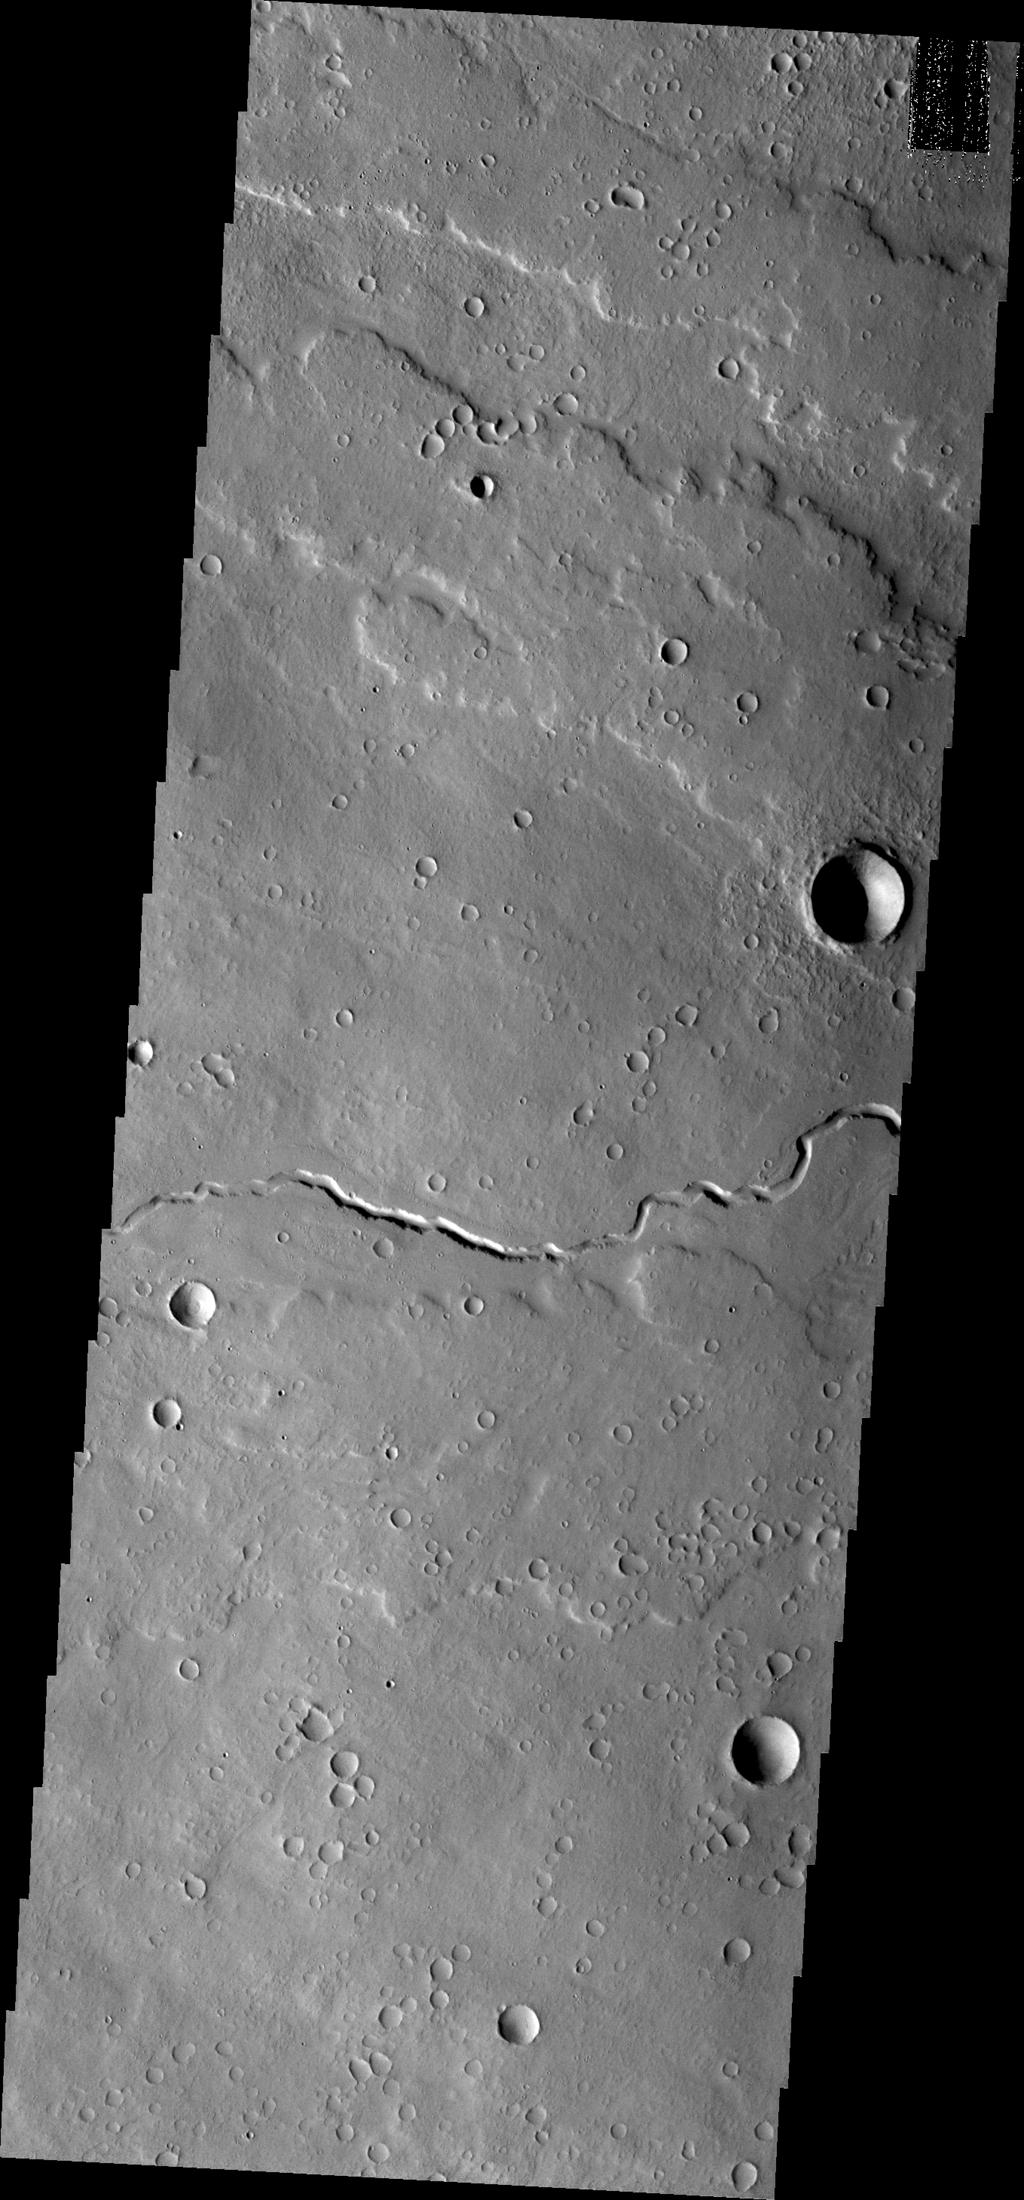 This channel is located in the volcanic flows north of Olympus Mons as seen by NASA's Mars Odyssey.